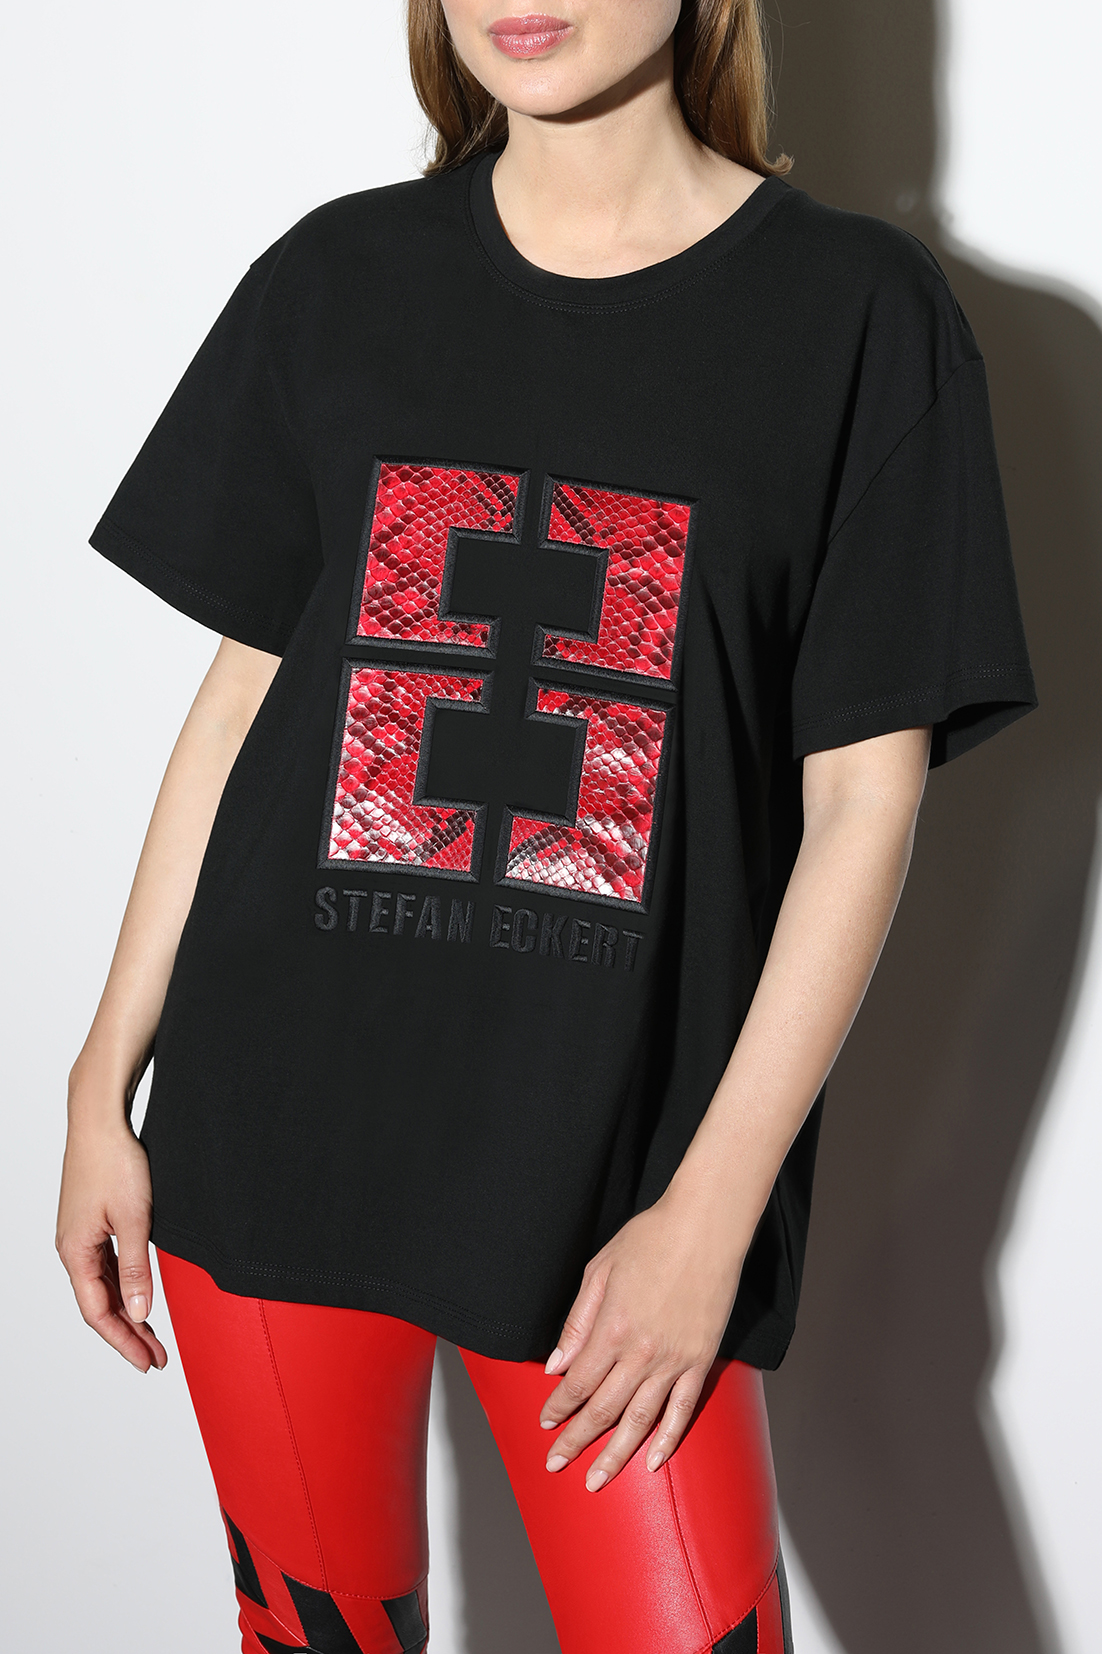 T-shirt-with-logo-embroidery-in-red-python-leather,-sustainably-made-from-organic-cotton,-by-designer-Stefan-Eckert